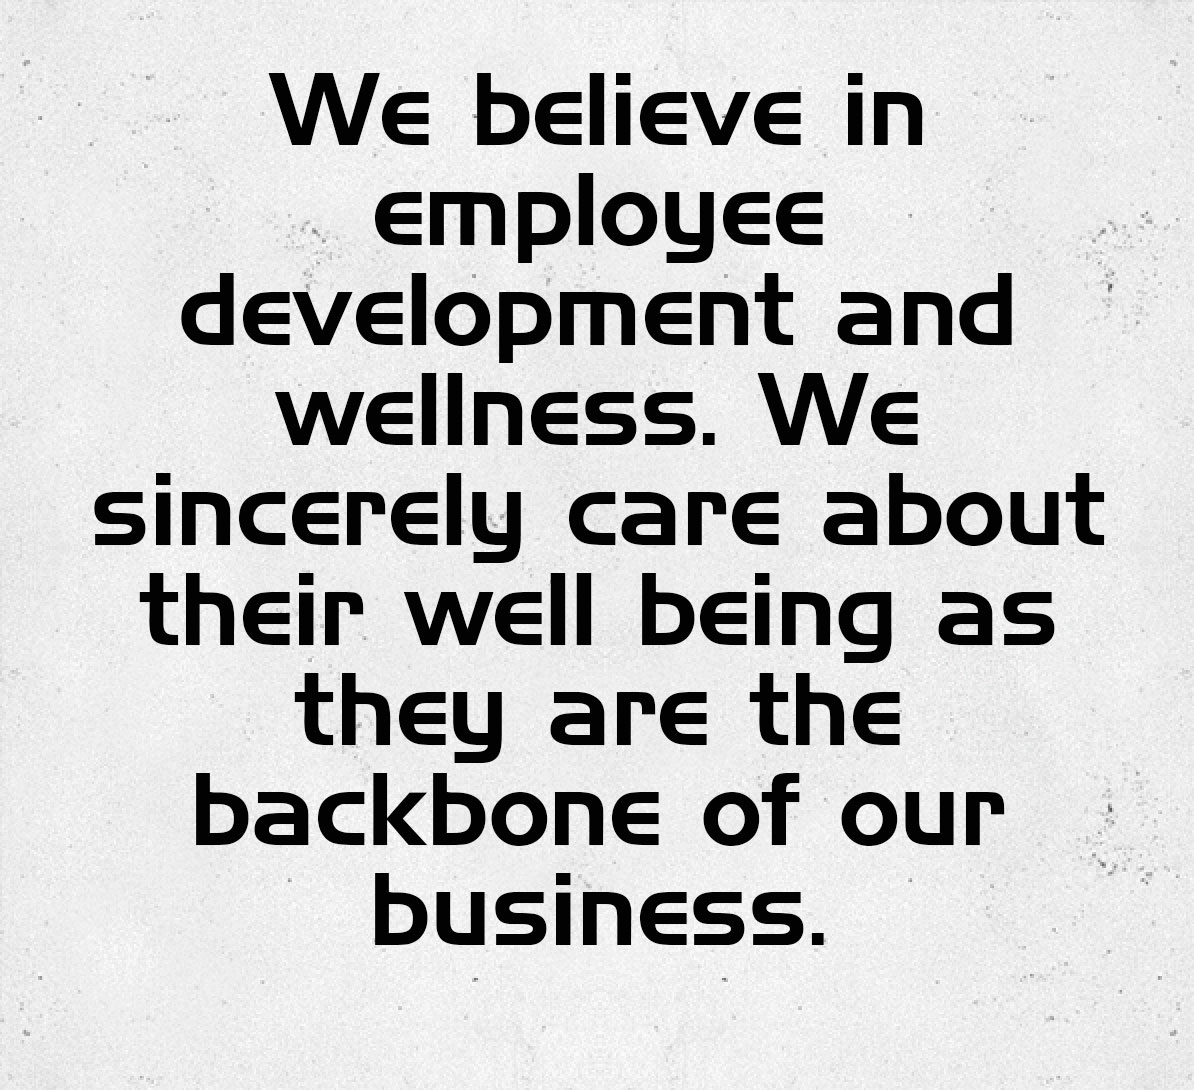 VALUE 5: Employee development and wellness. We sincerely